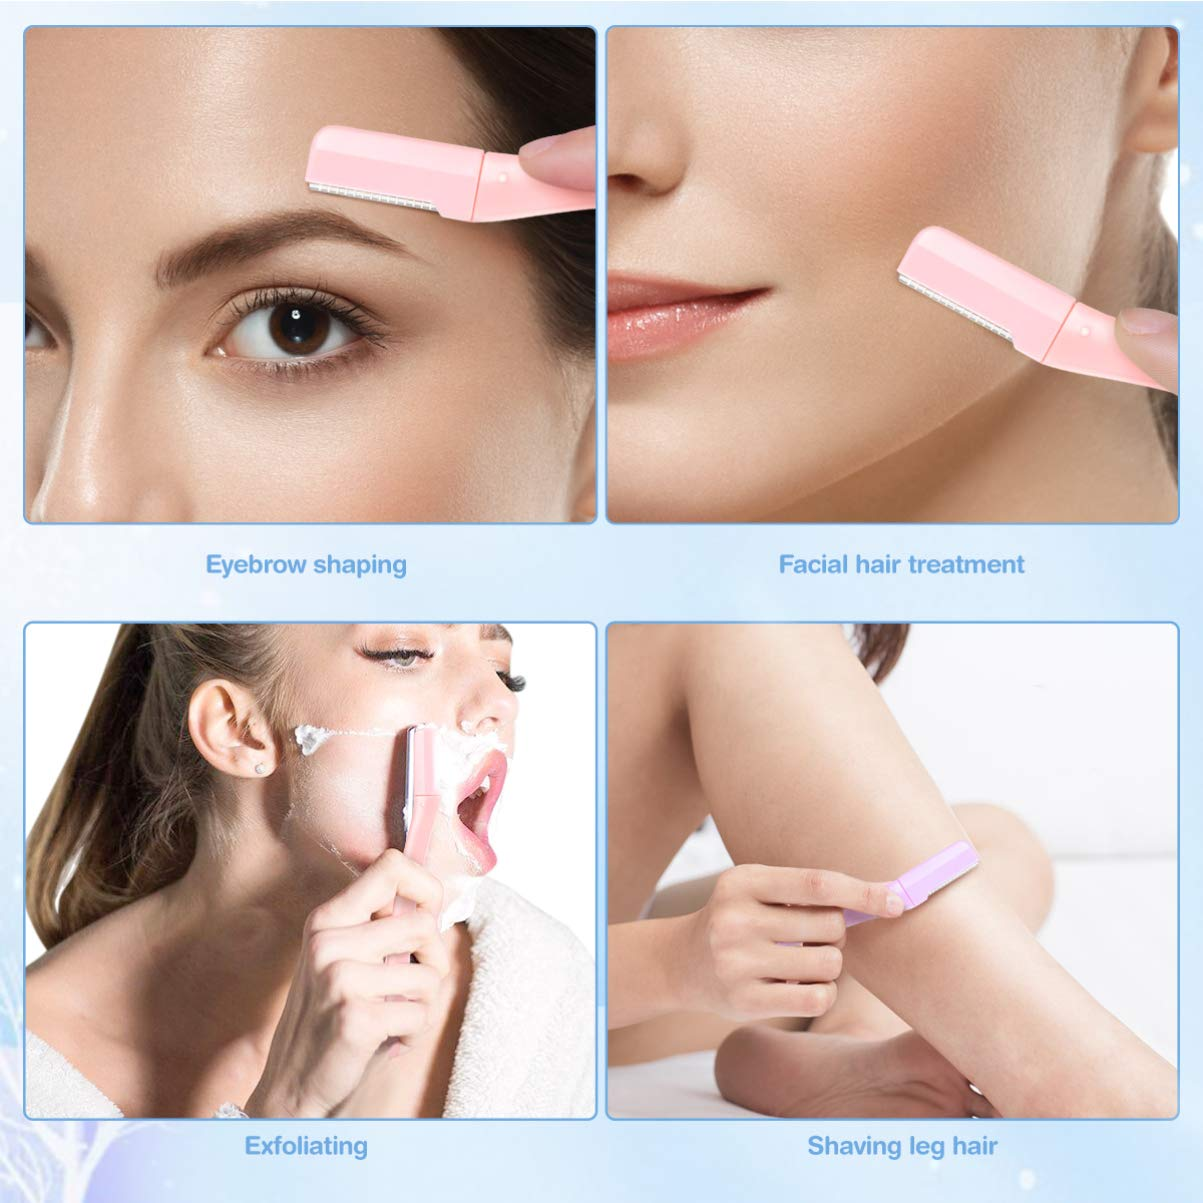 Eyebrow Shavers, Multipurpose Exfoliating Eyebrow Razor Trimmer Shaper Shaver with Precision Cover,12PCs